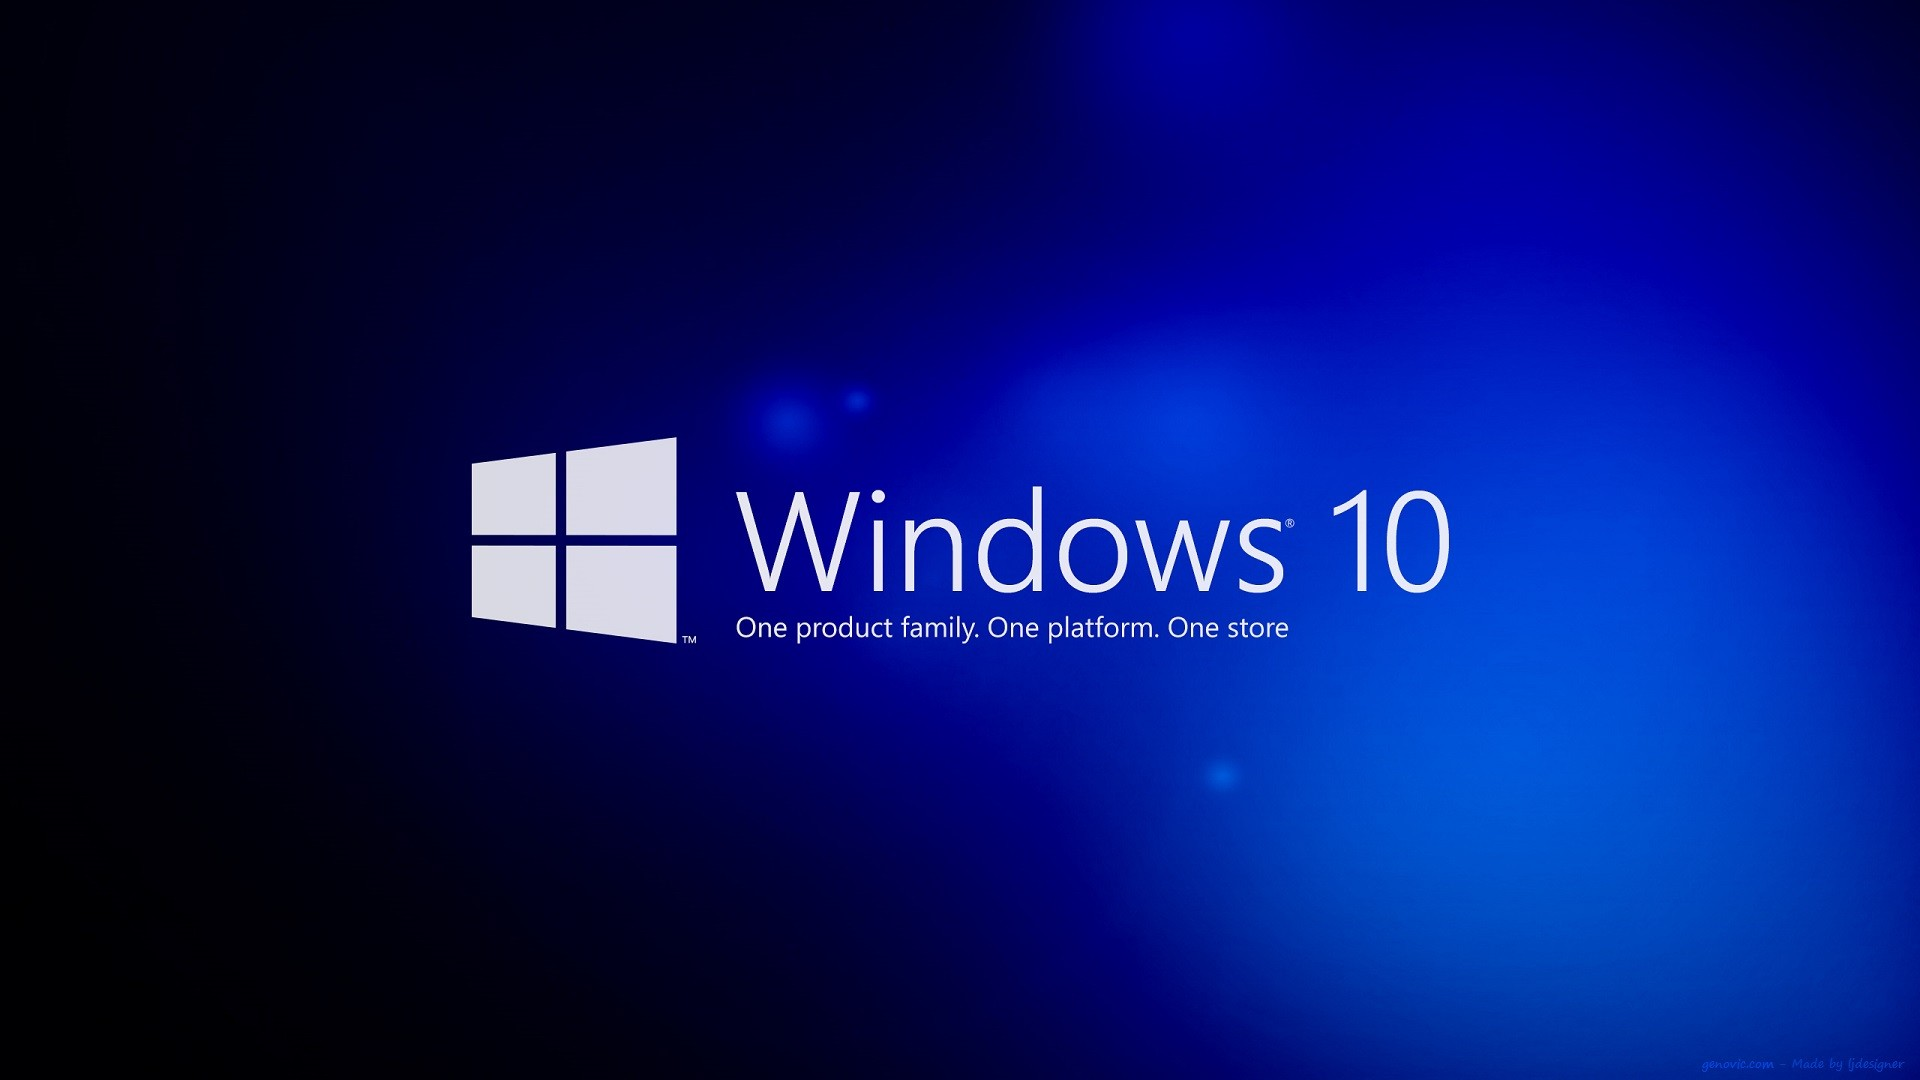 Windows 10 Wallpaper Hd Download Free Cool Full Hd Backgrounds